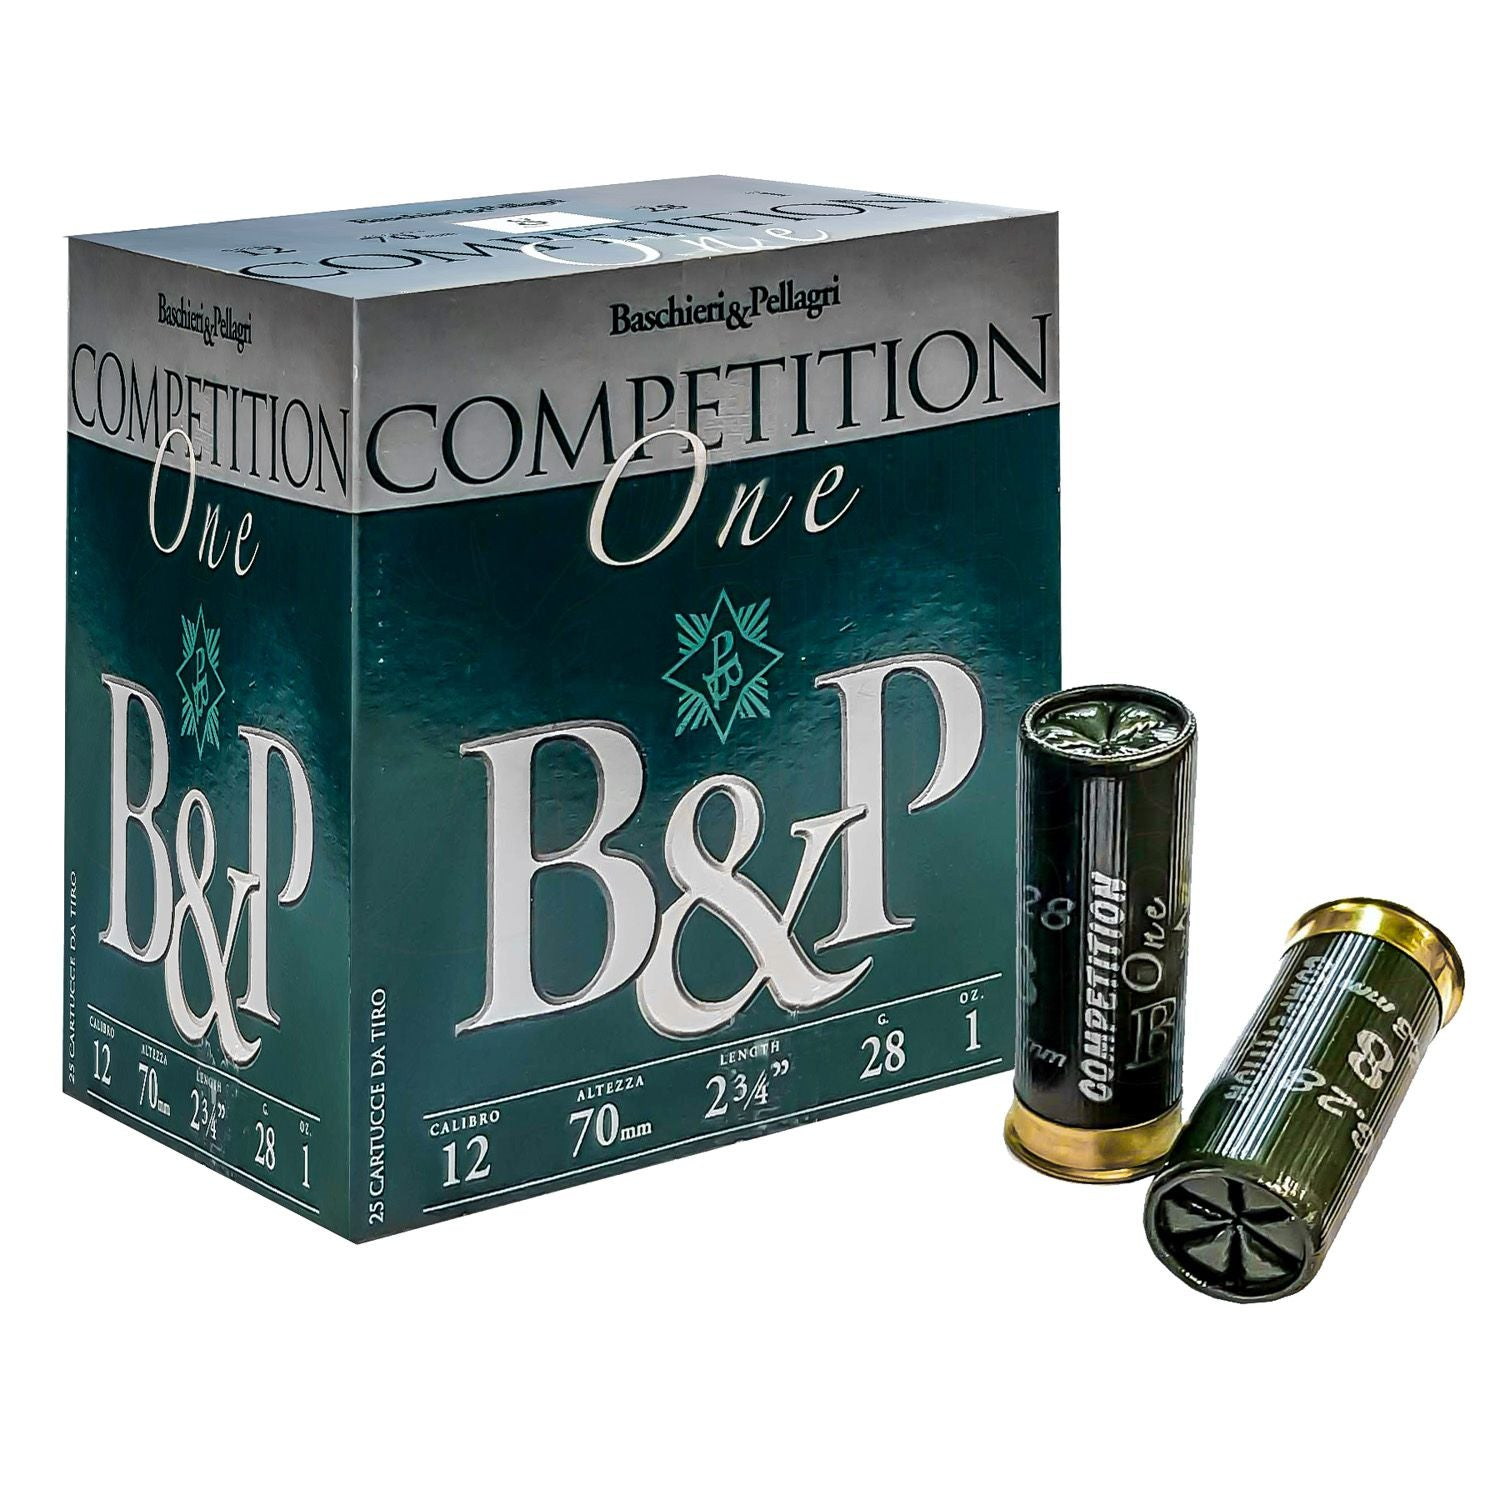 "Competition One Lite 2¾"" 12g 28g 1200FPS"